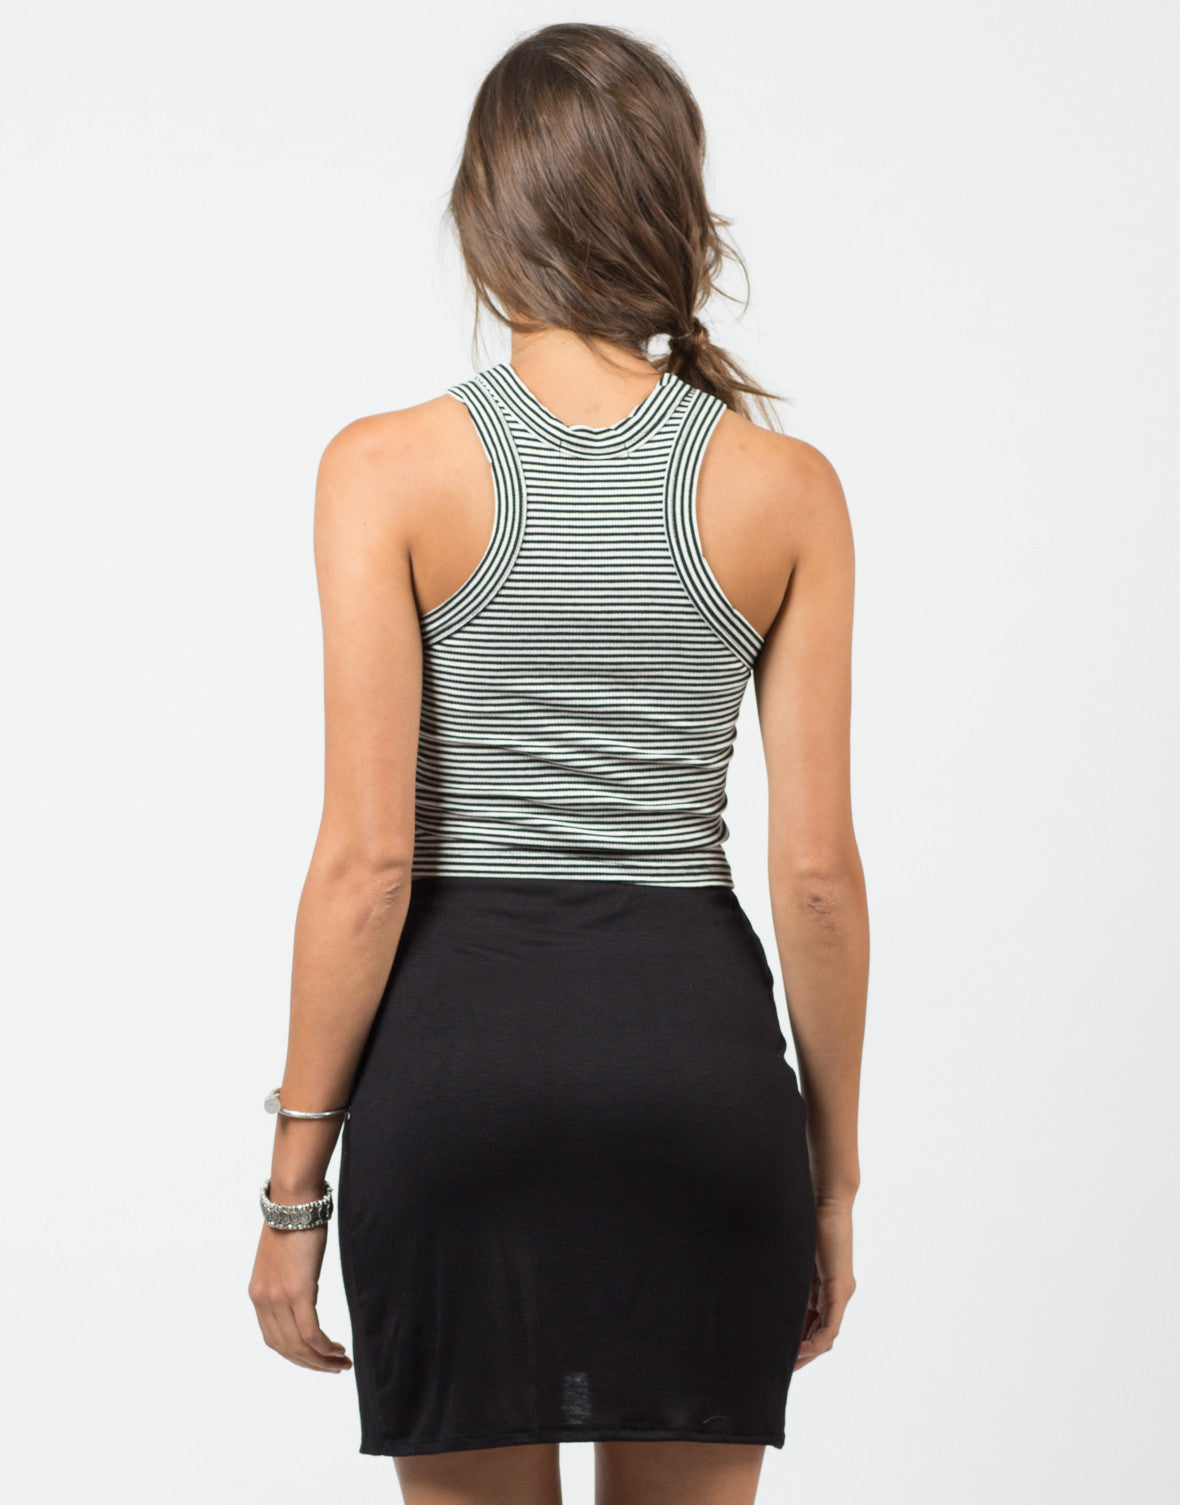 Back View of Racer Striped Tank